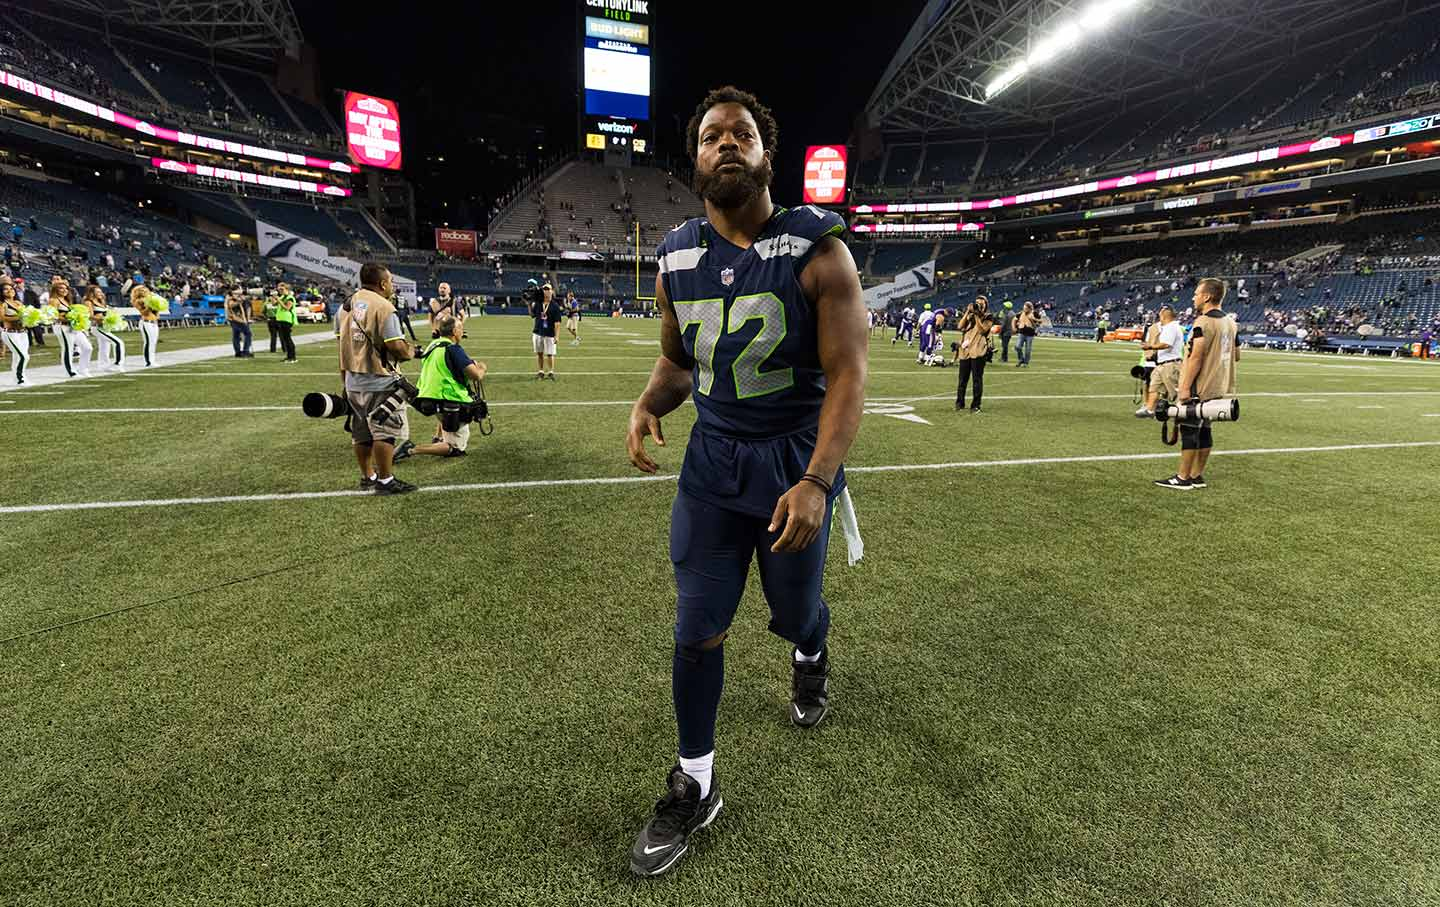 These 2 NFL Players Stood Up for Palestine—and It Didn't Kill Their Careers